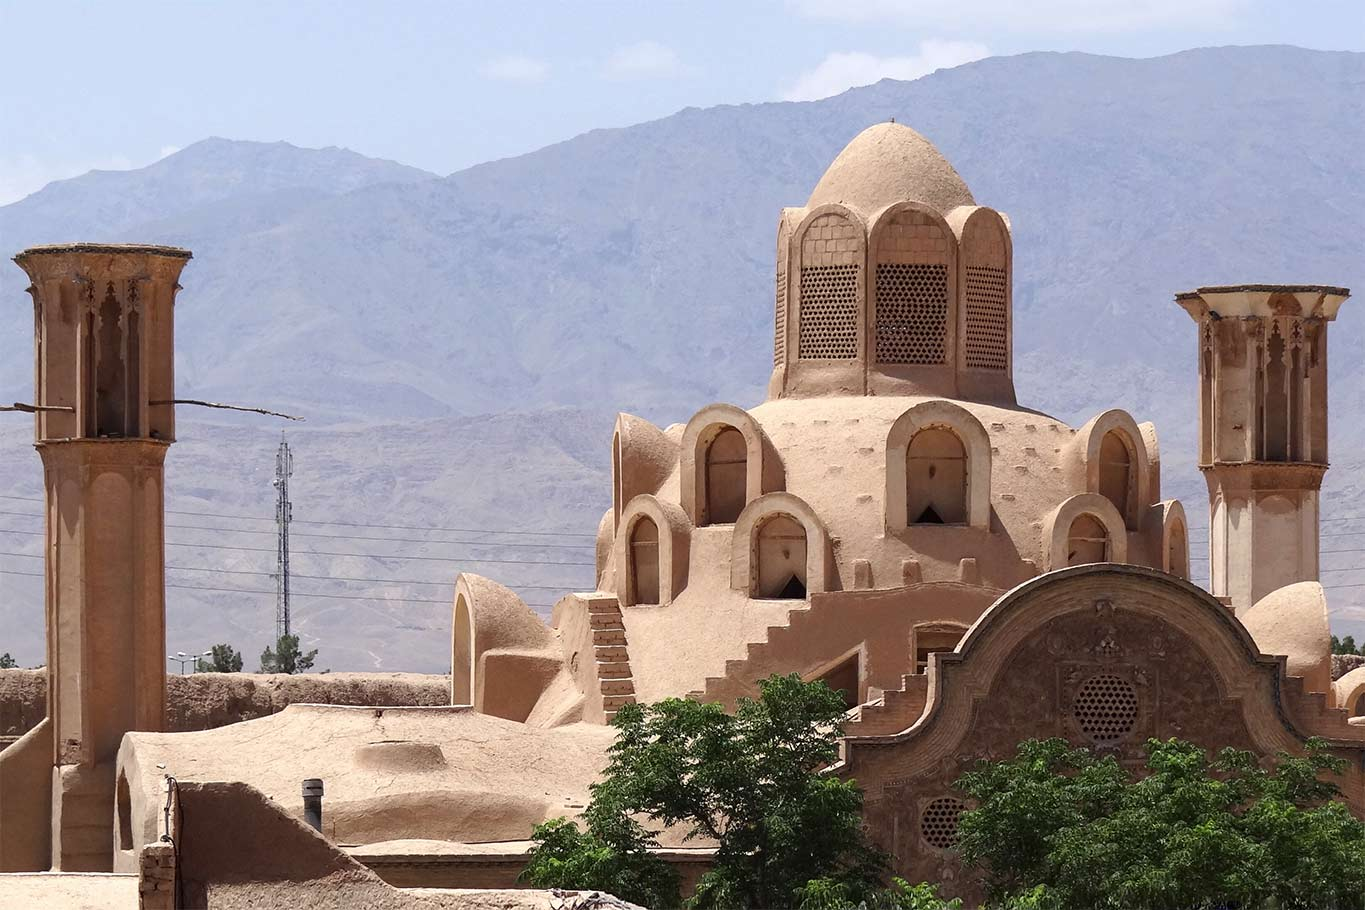 Borujerdi House, in Kashan, central Iran. Built in 1857, it is an excellent example of ancient Persian desert architecture. The two tall windcatchers cool the andaruni (courtyard) of the house.